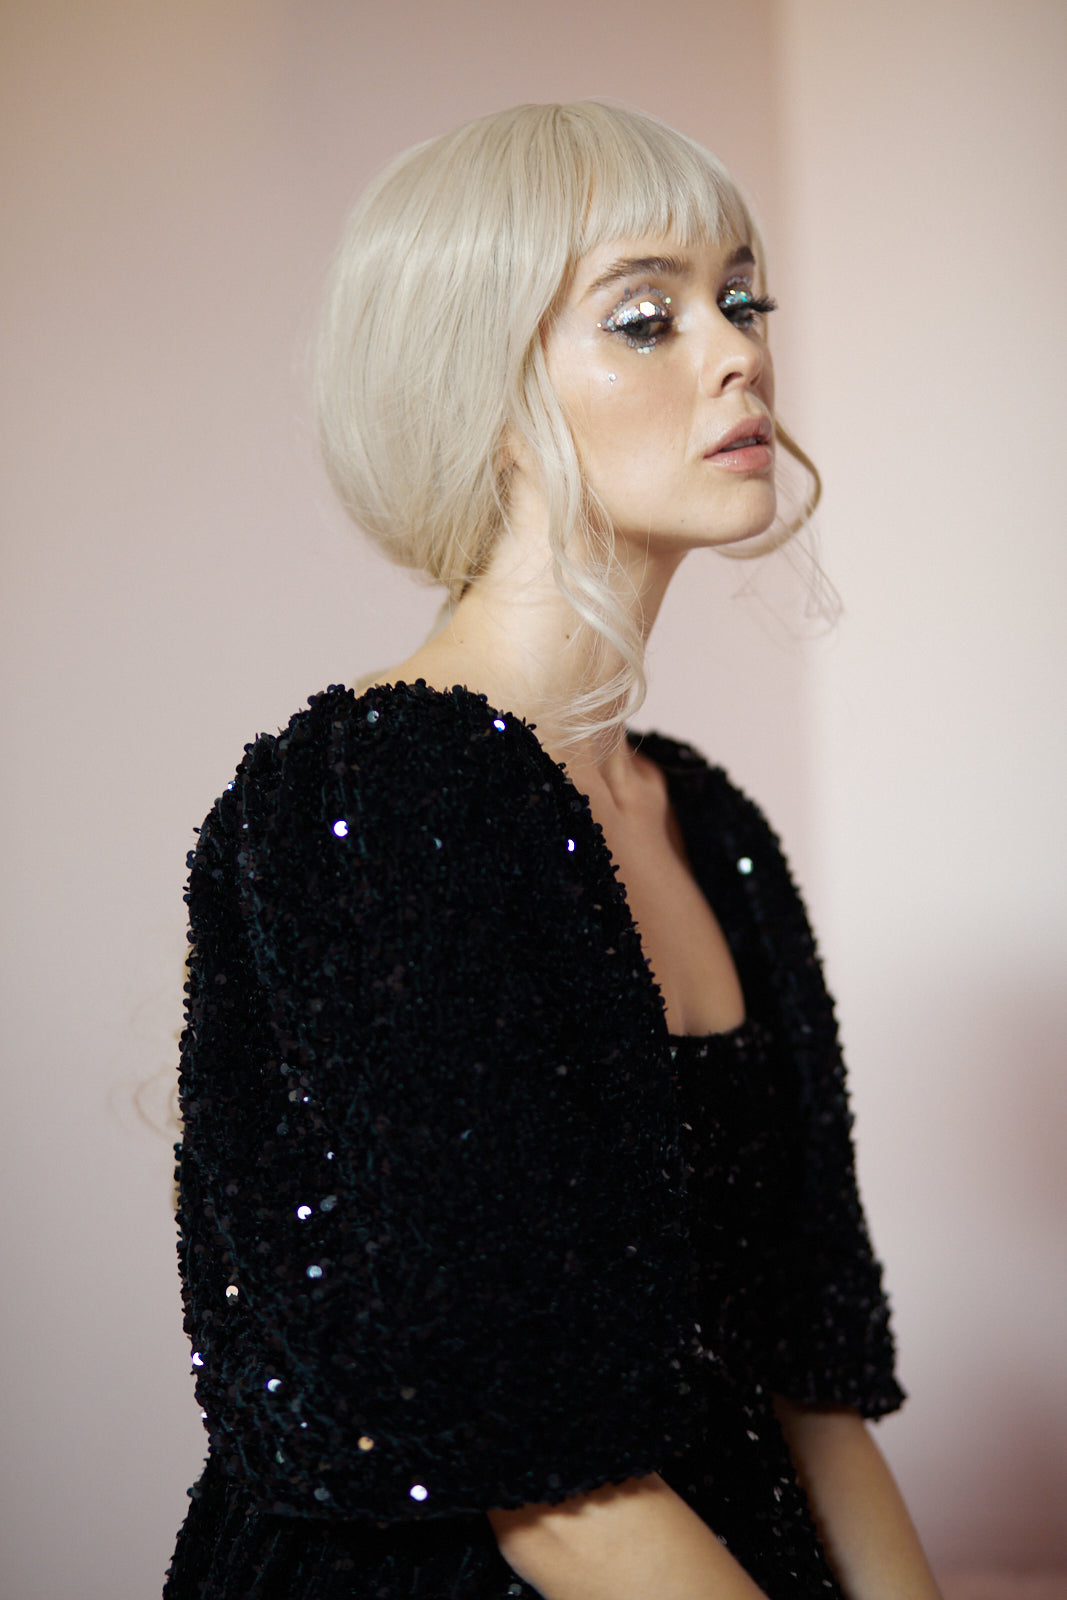 The Black Sequin Puff Dress